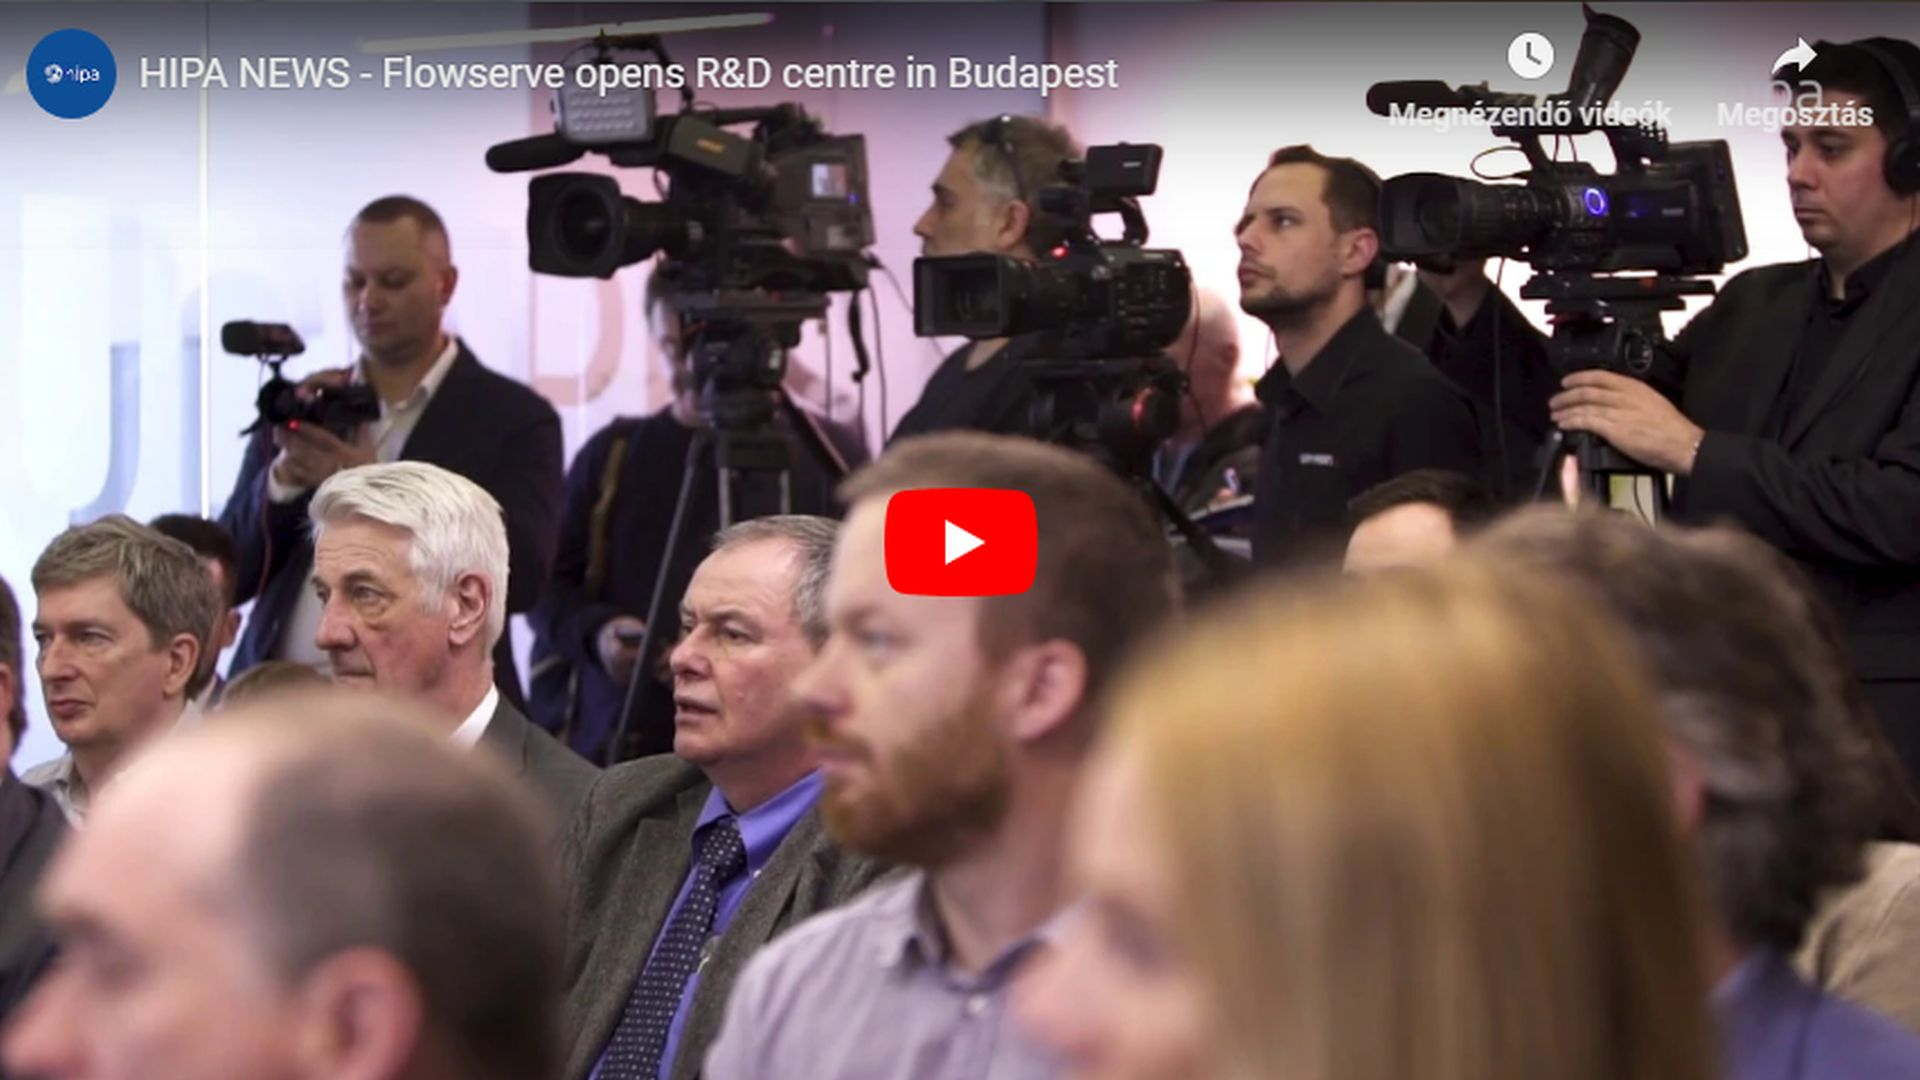 Flowserve opens its R&D centre in Budapest - VIDEO REPORT